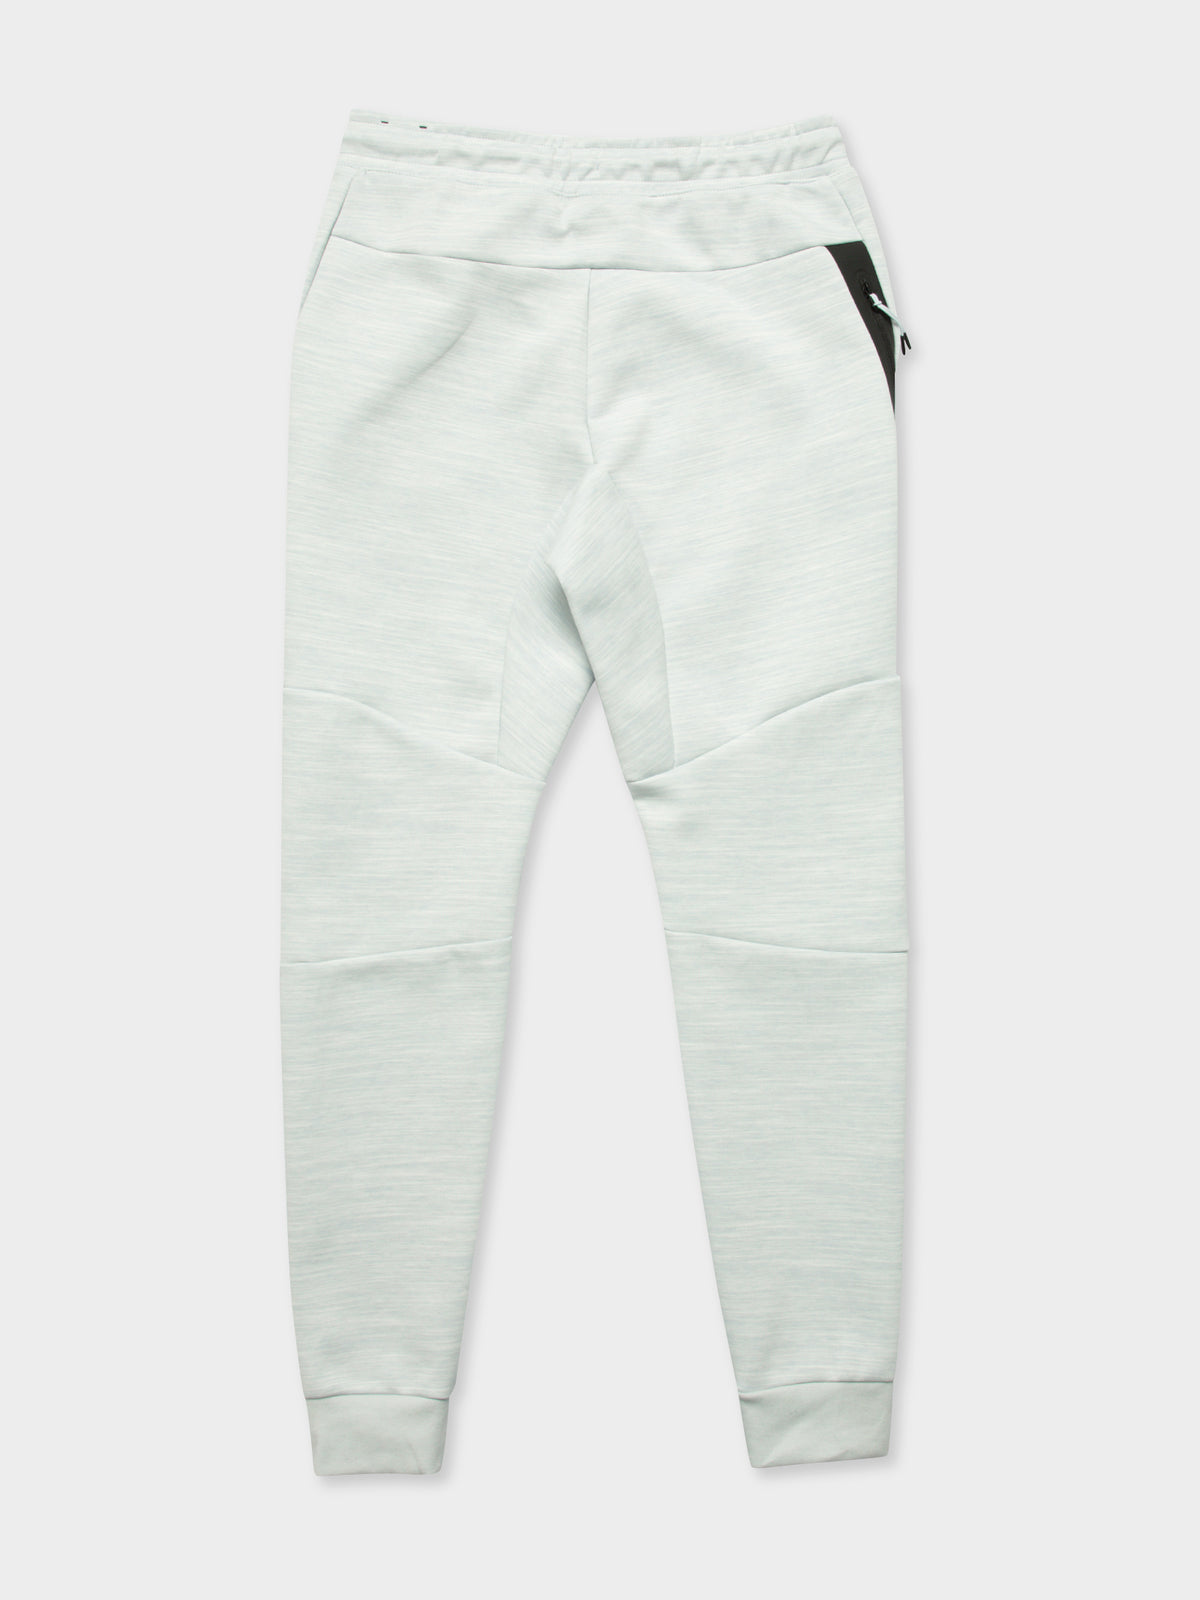 NSW Tech Fleece Jogger Pants in Grey Heather